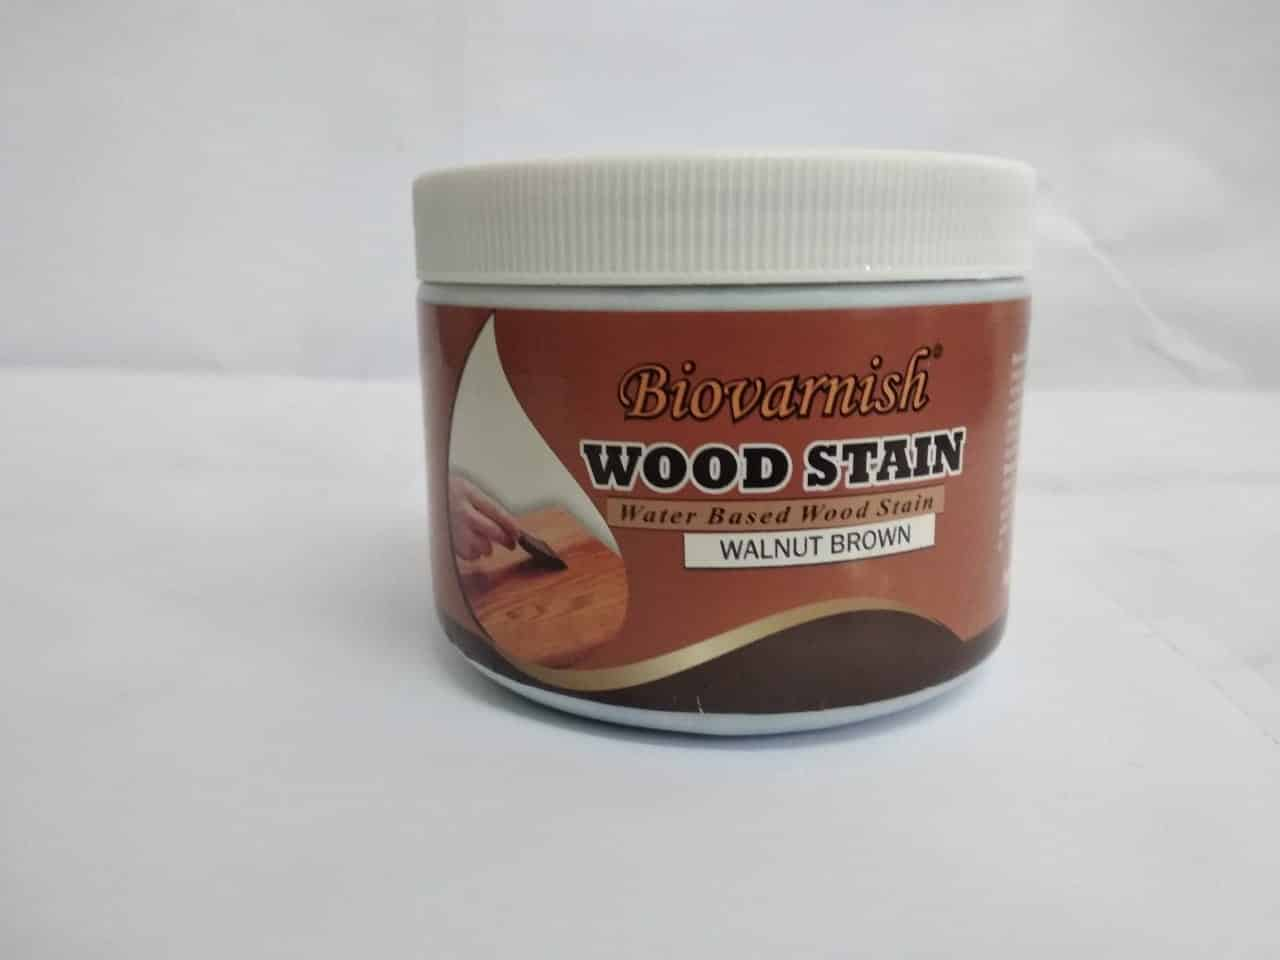 Wood-Stain-dari-Biovarnish